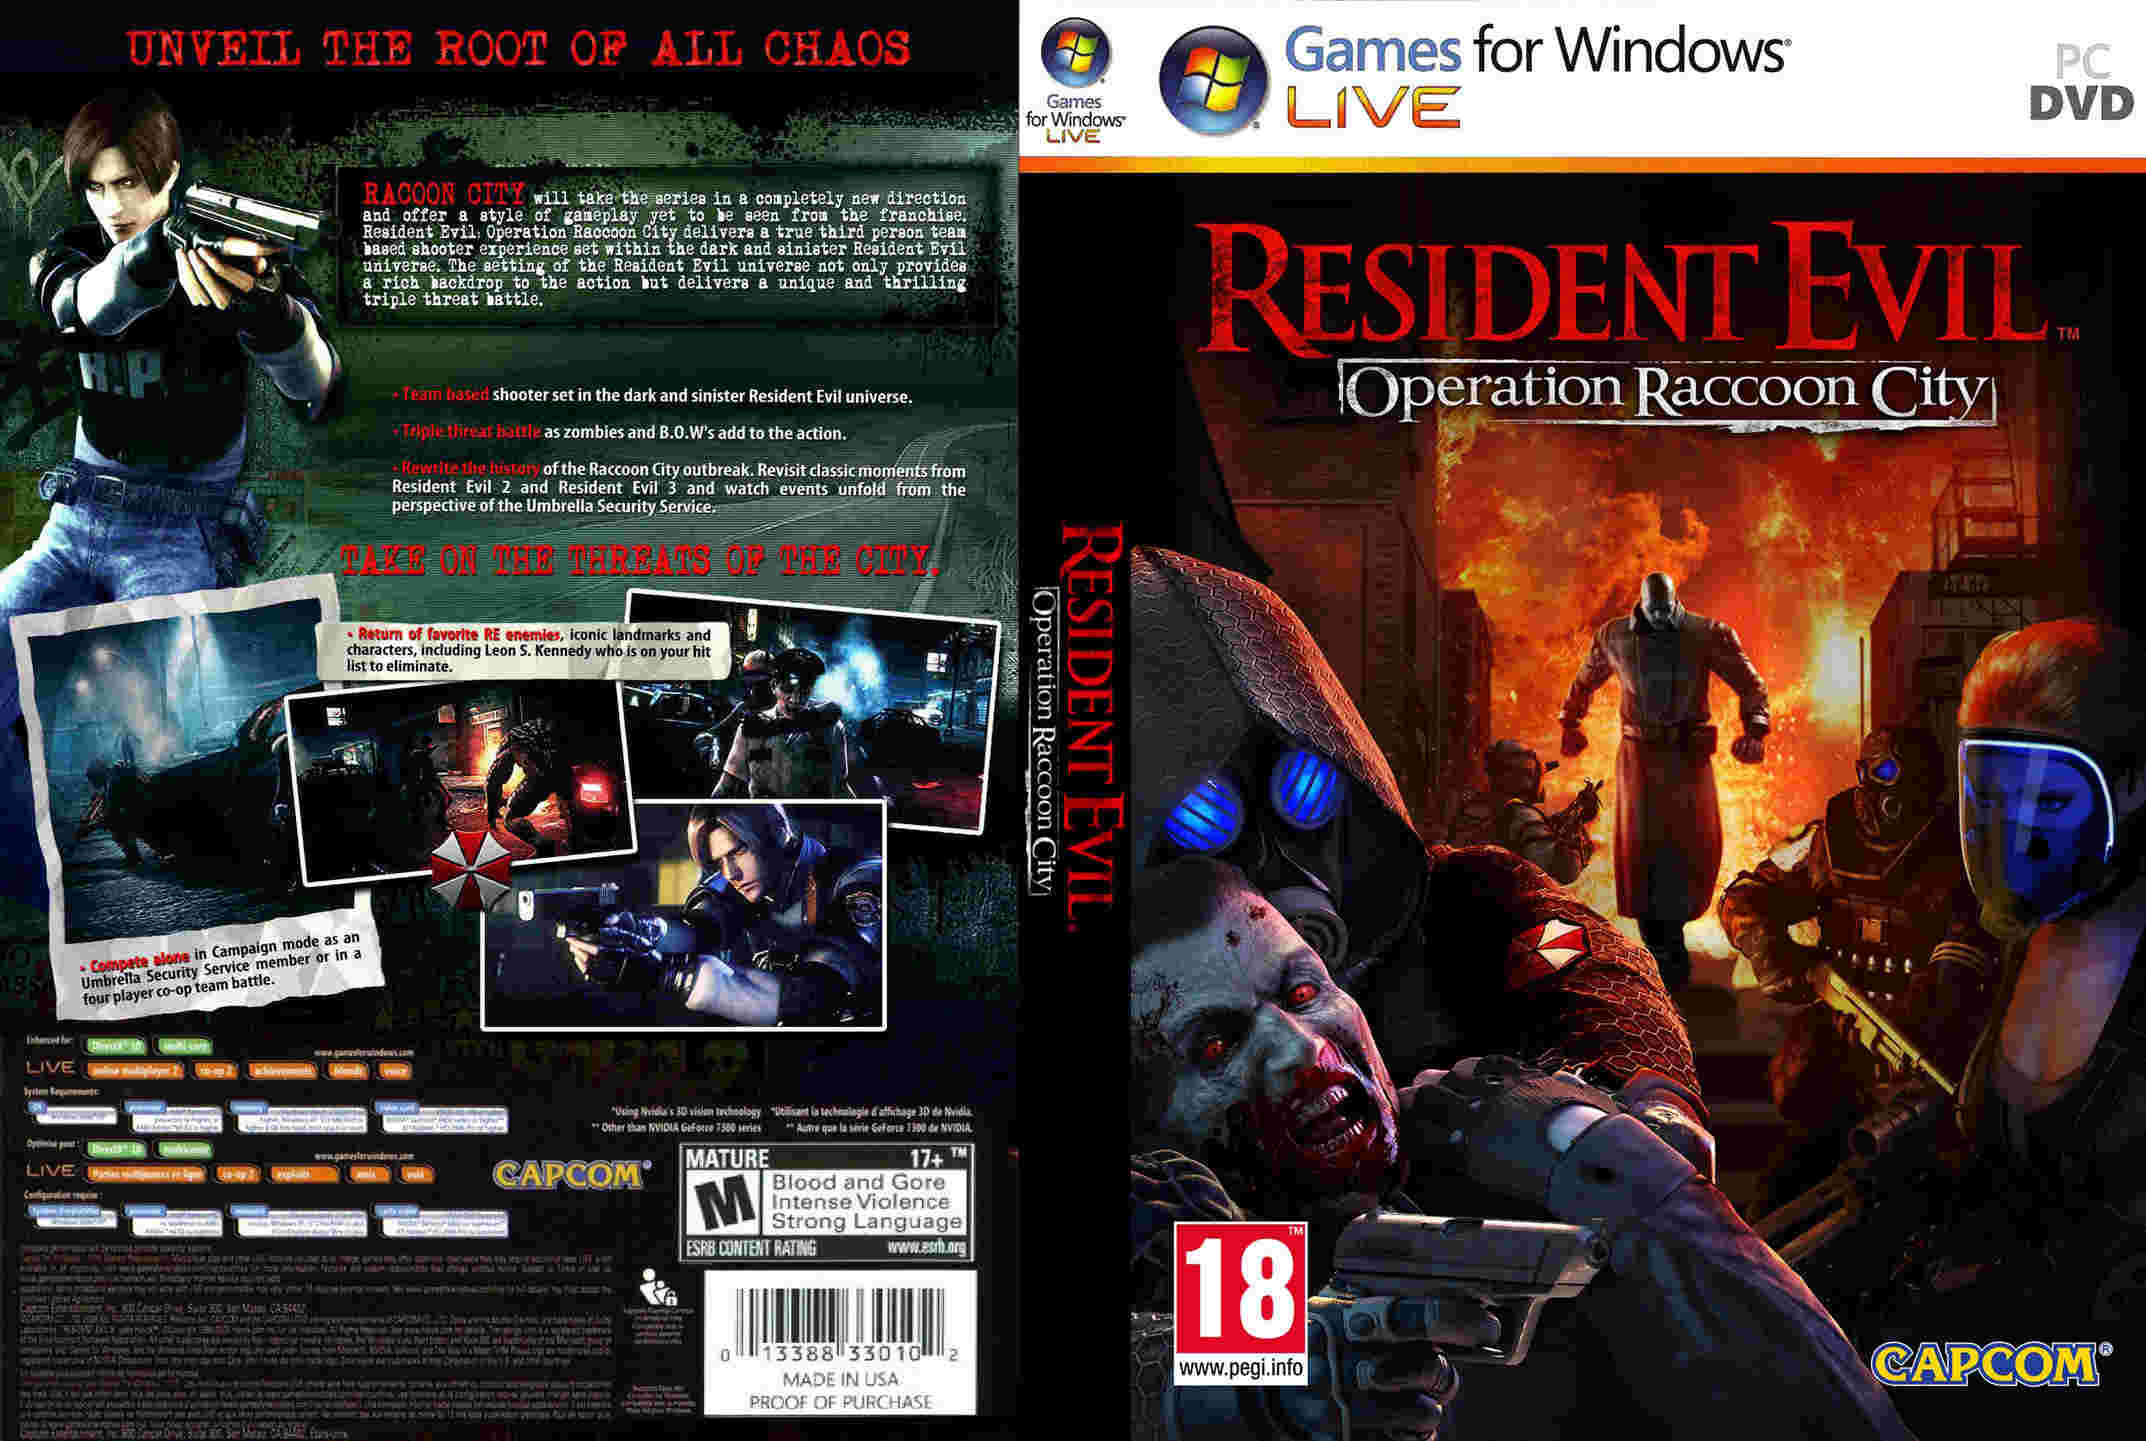 2882 Resident Evil - Operation Raccoon City